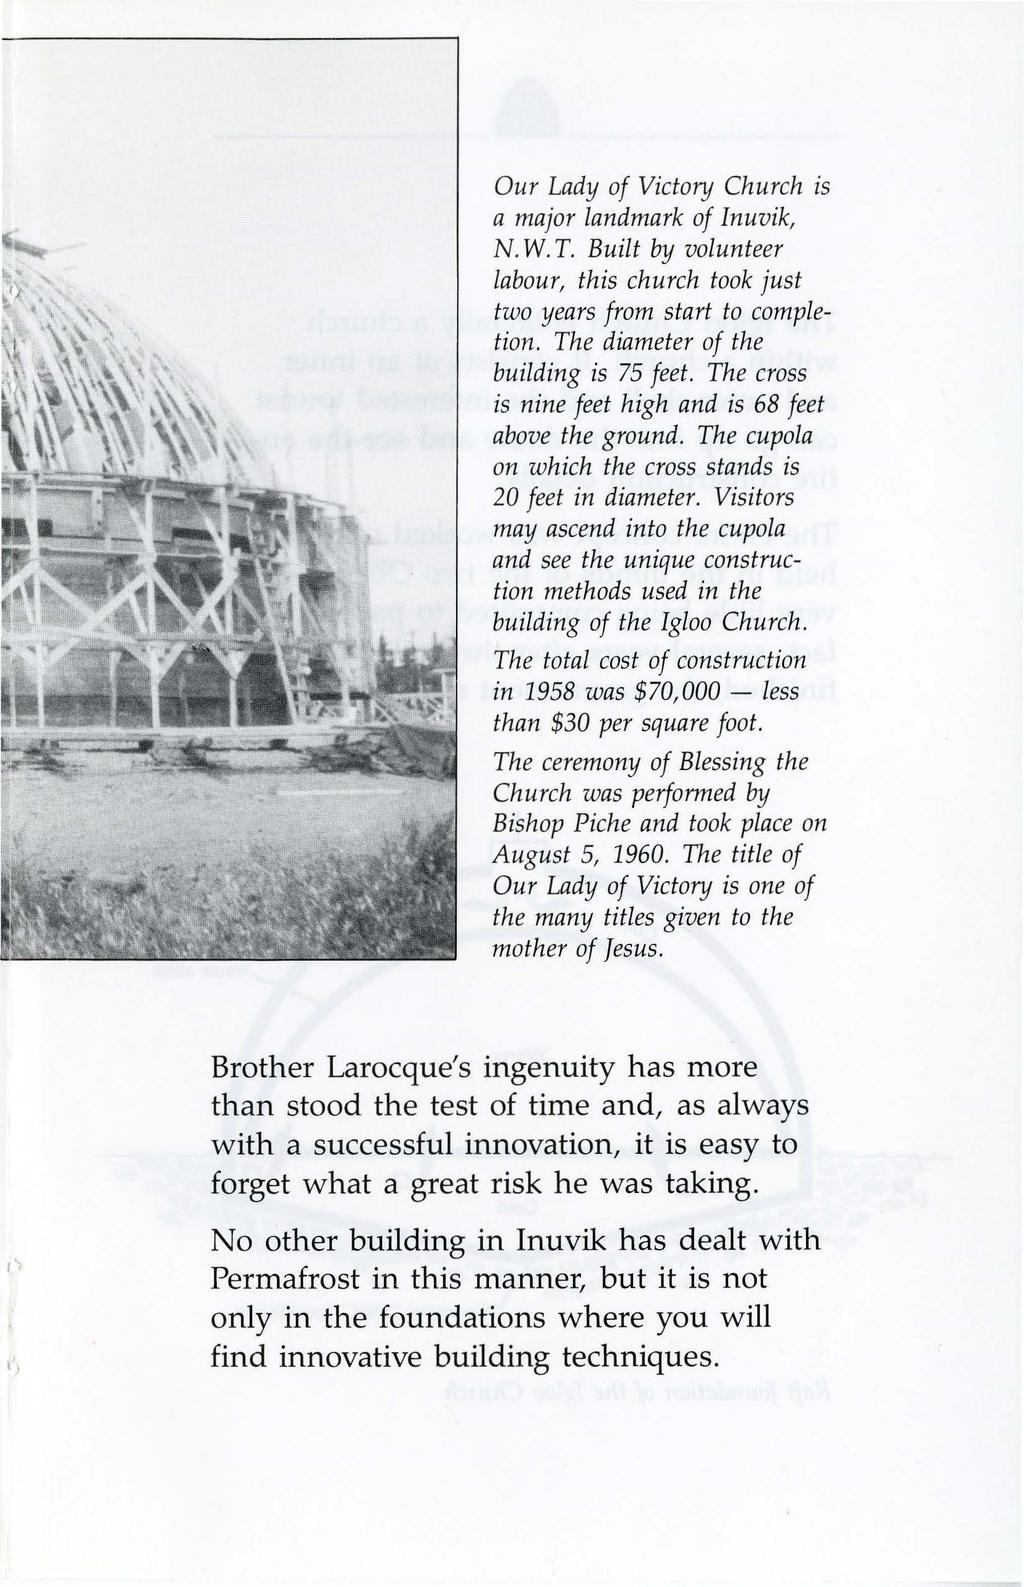 Our Lady of Victory Church is a major landmark of Inuvik, N. W. T. Built by volunteer labour, this church took just two years from start to completion. The diameter of the building is 75 feet.